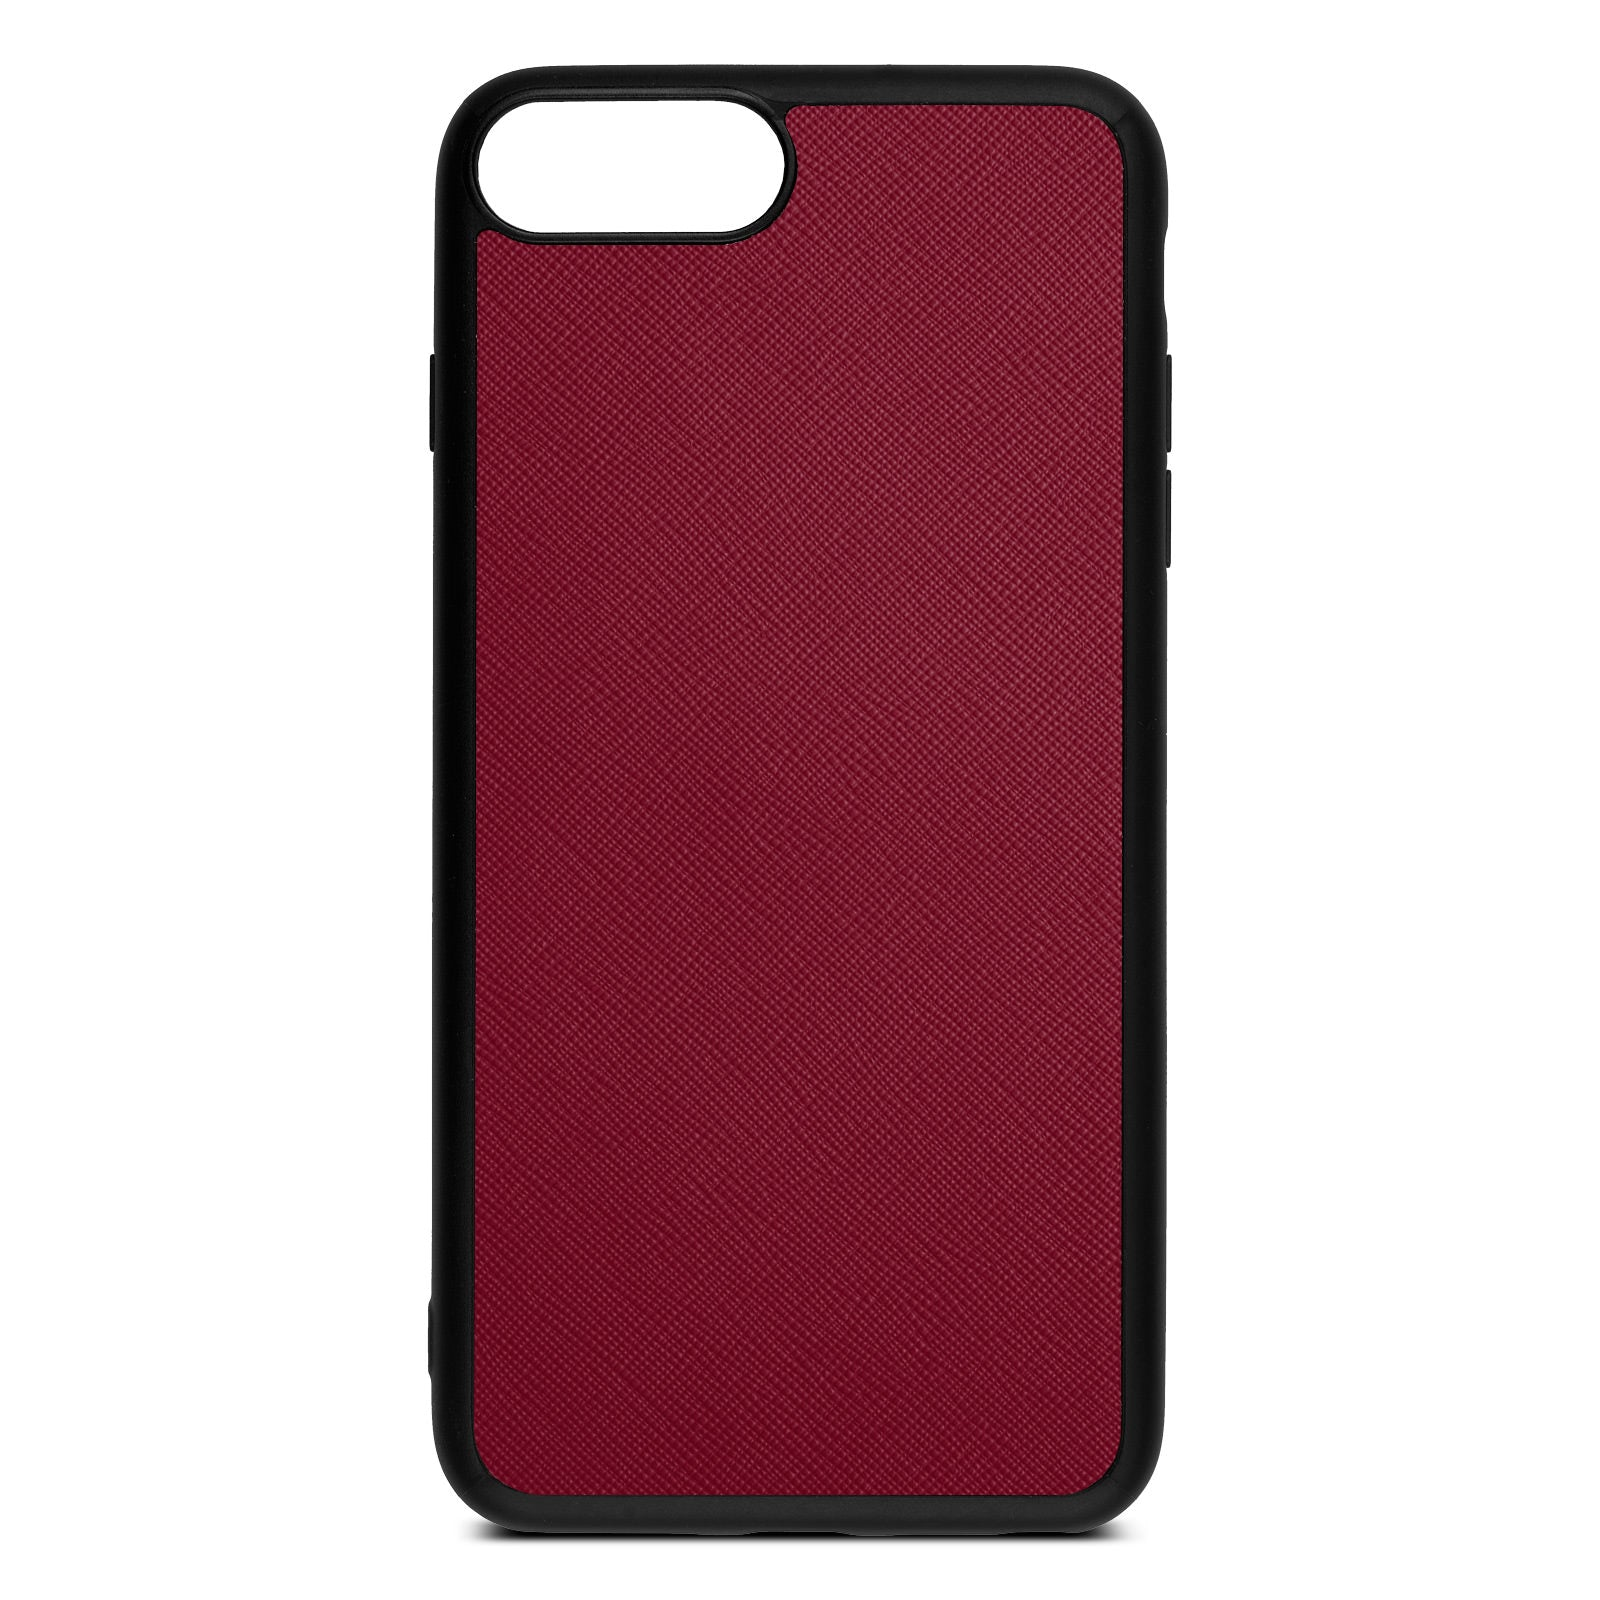 Blank Personalised Dark Red Saffiano Leather iPhone 8 Plus Case